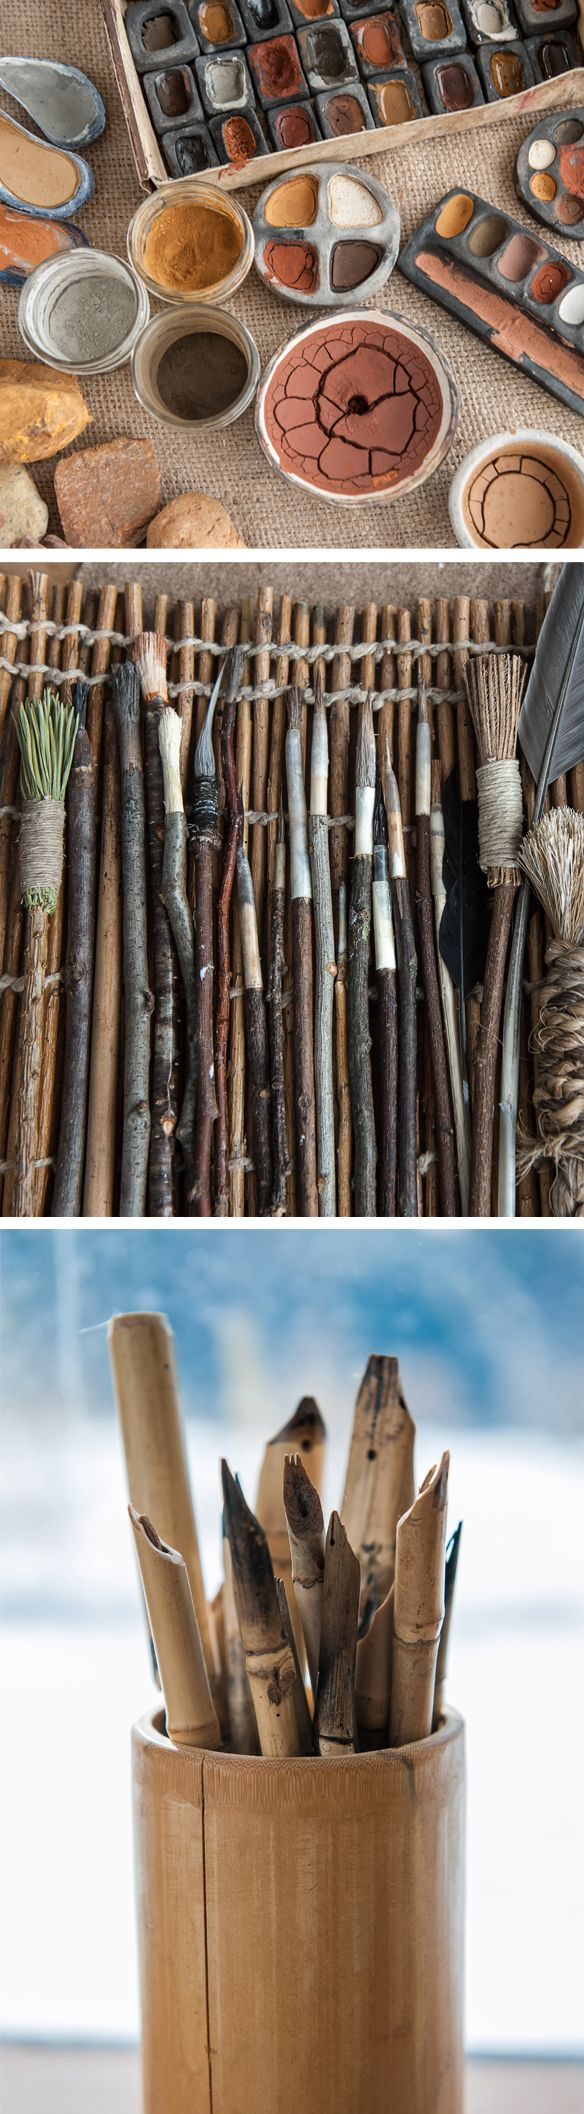 These lovely images are from a book called The Organic Artist by Nick Neddo. Learn to make natural paints, paper, paint brushes, and charcoal pencils made with branches!